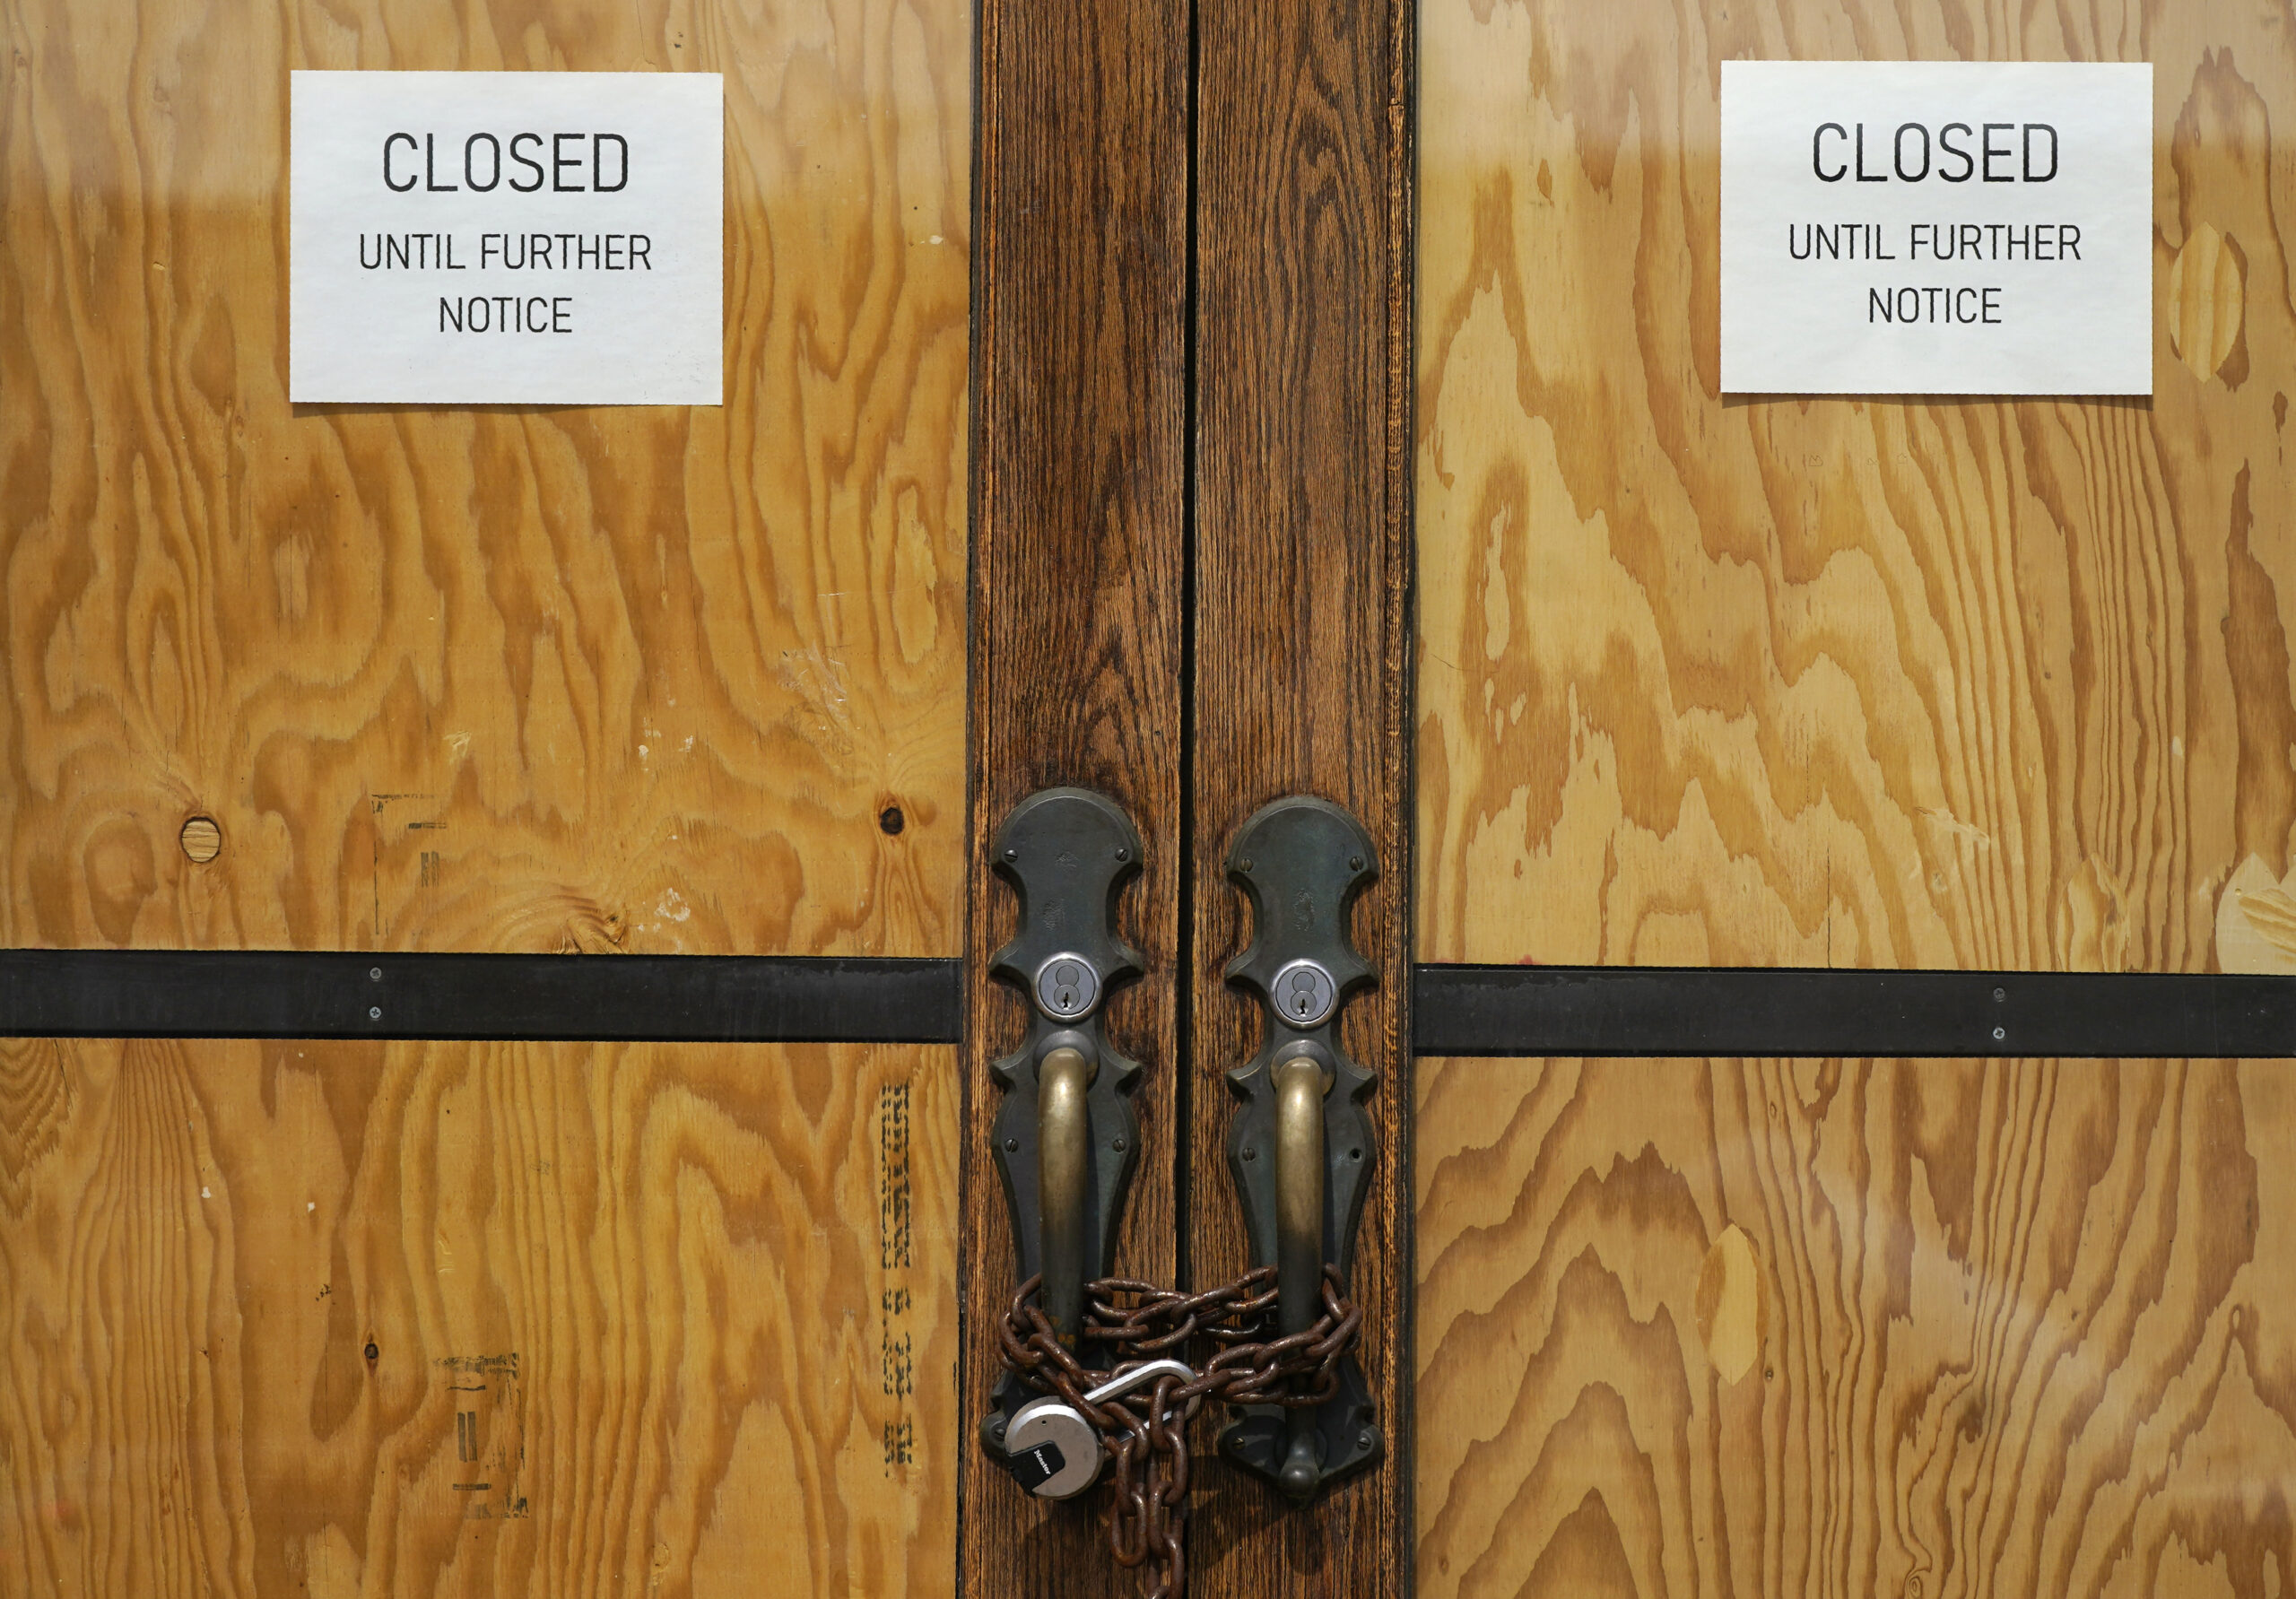 The front doors of a closed restaurant